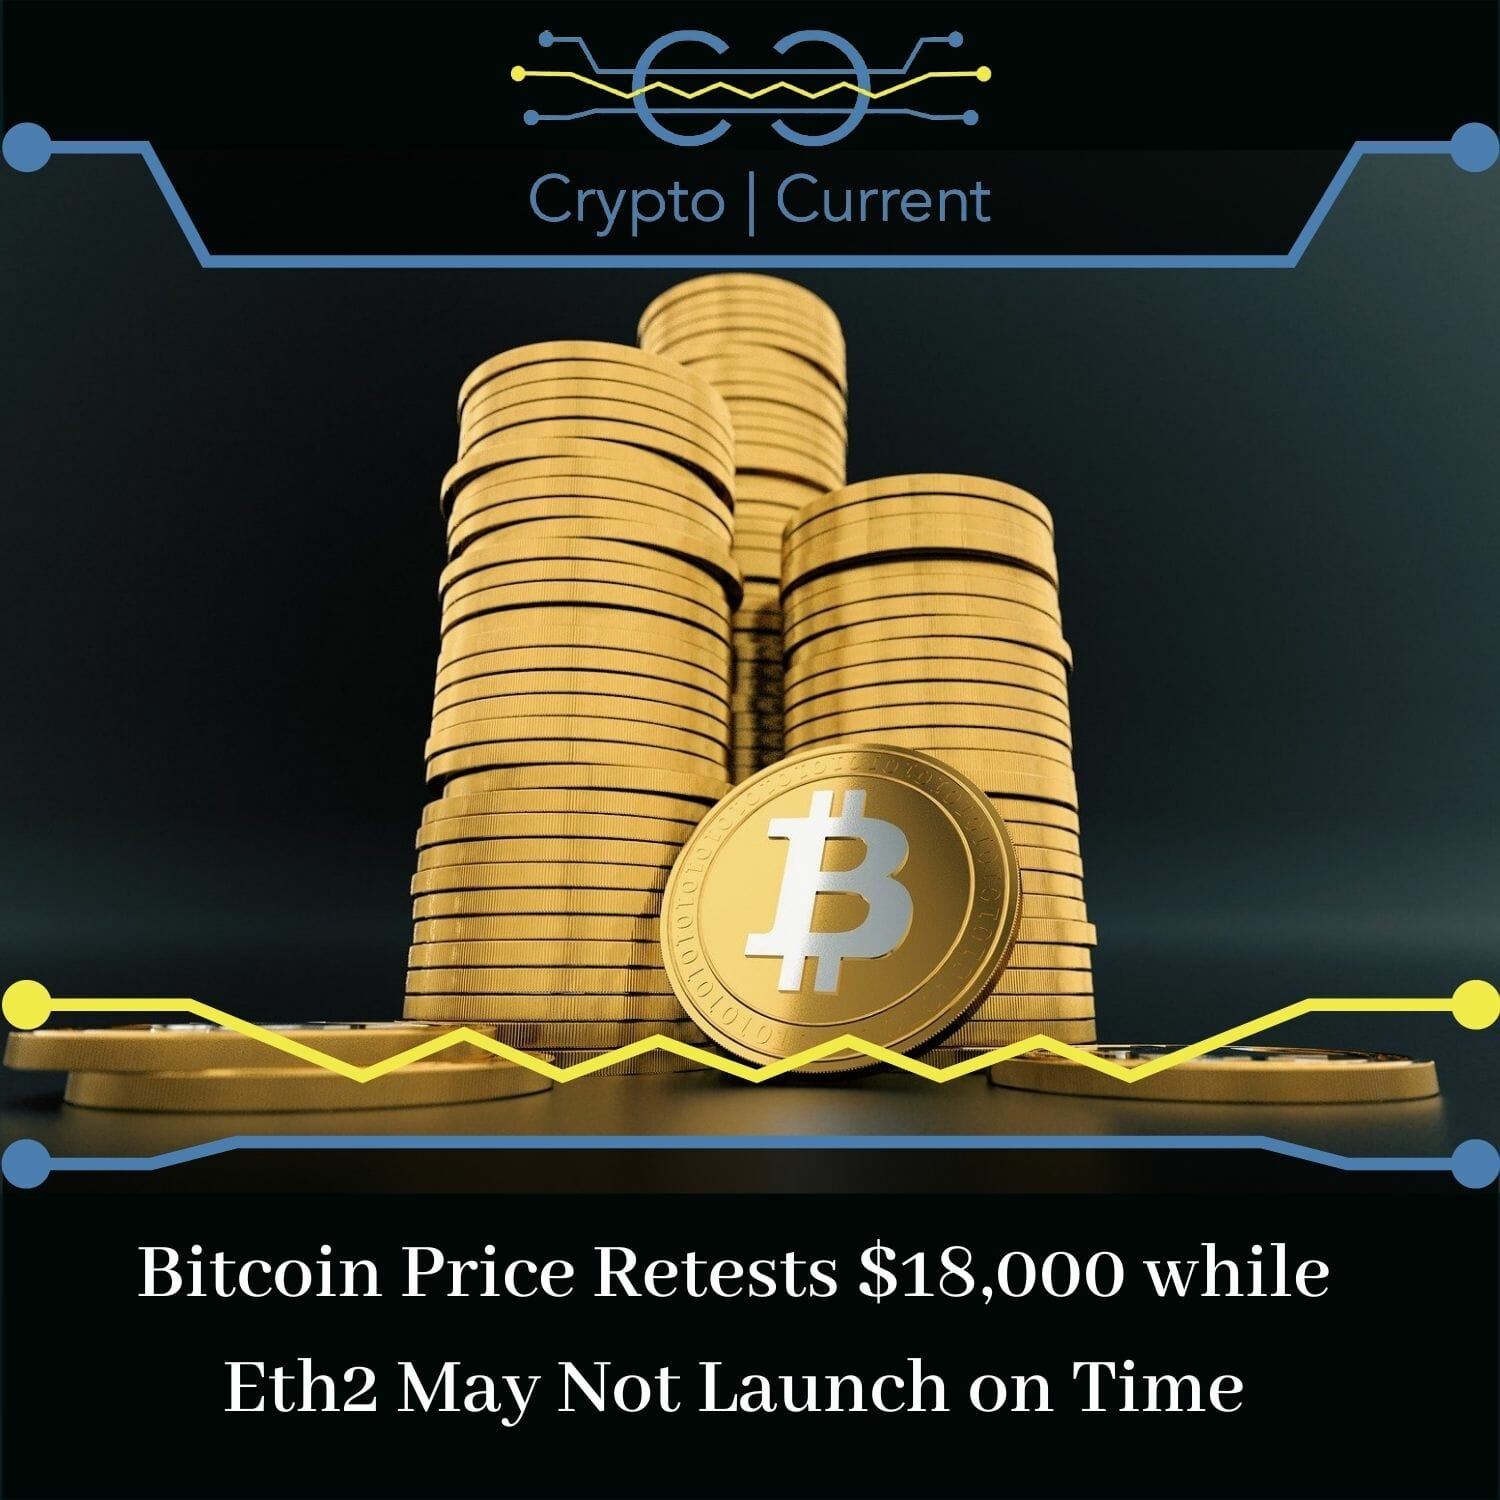 Bitcoin Price Retests $18,000 while Eth2 May Not Launch on Time